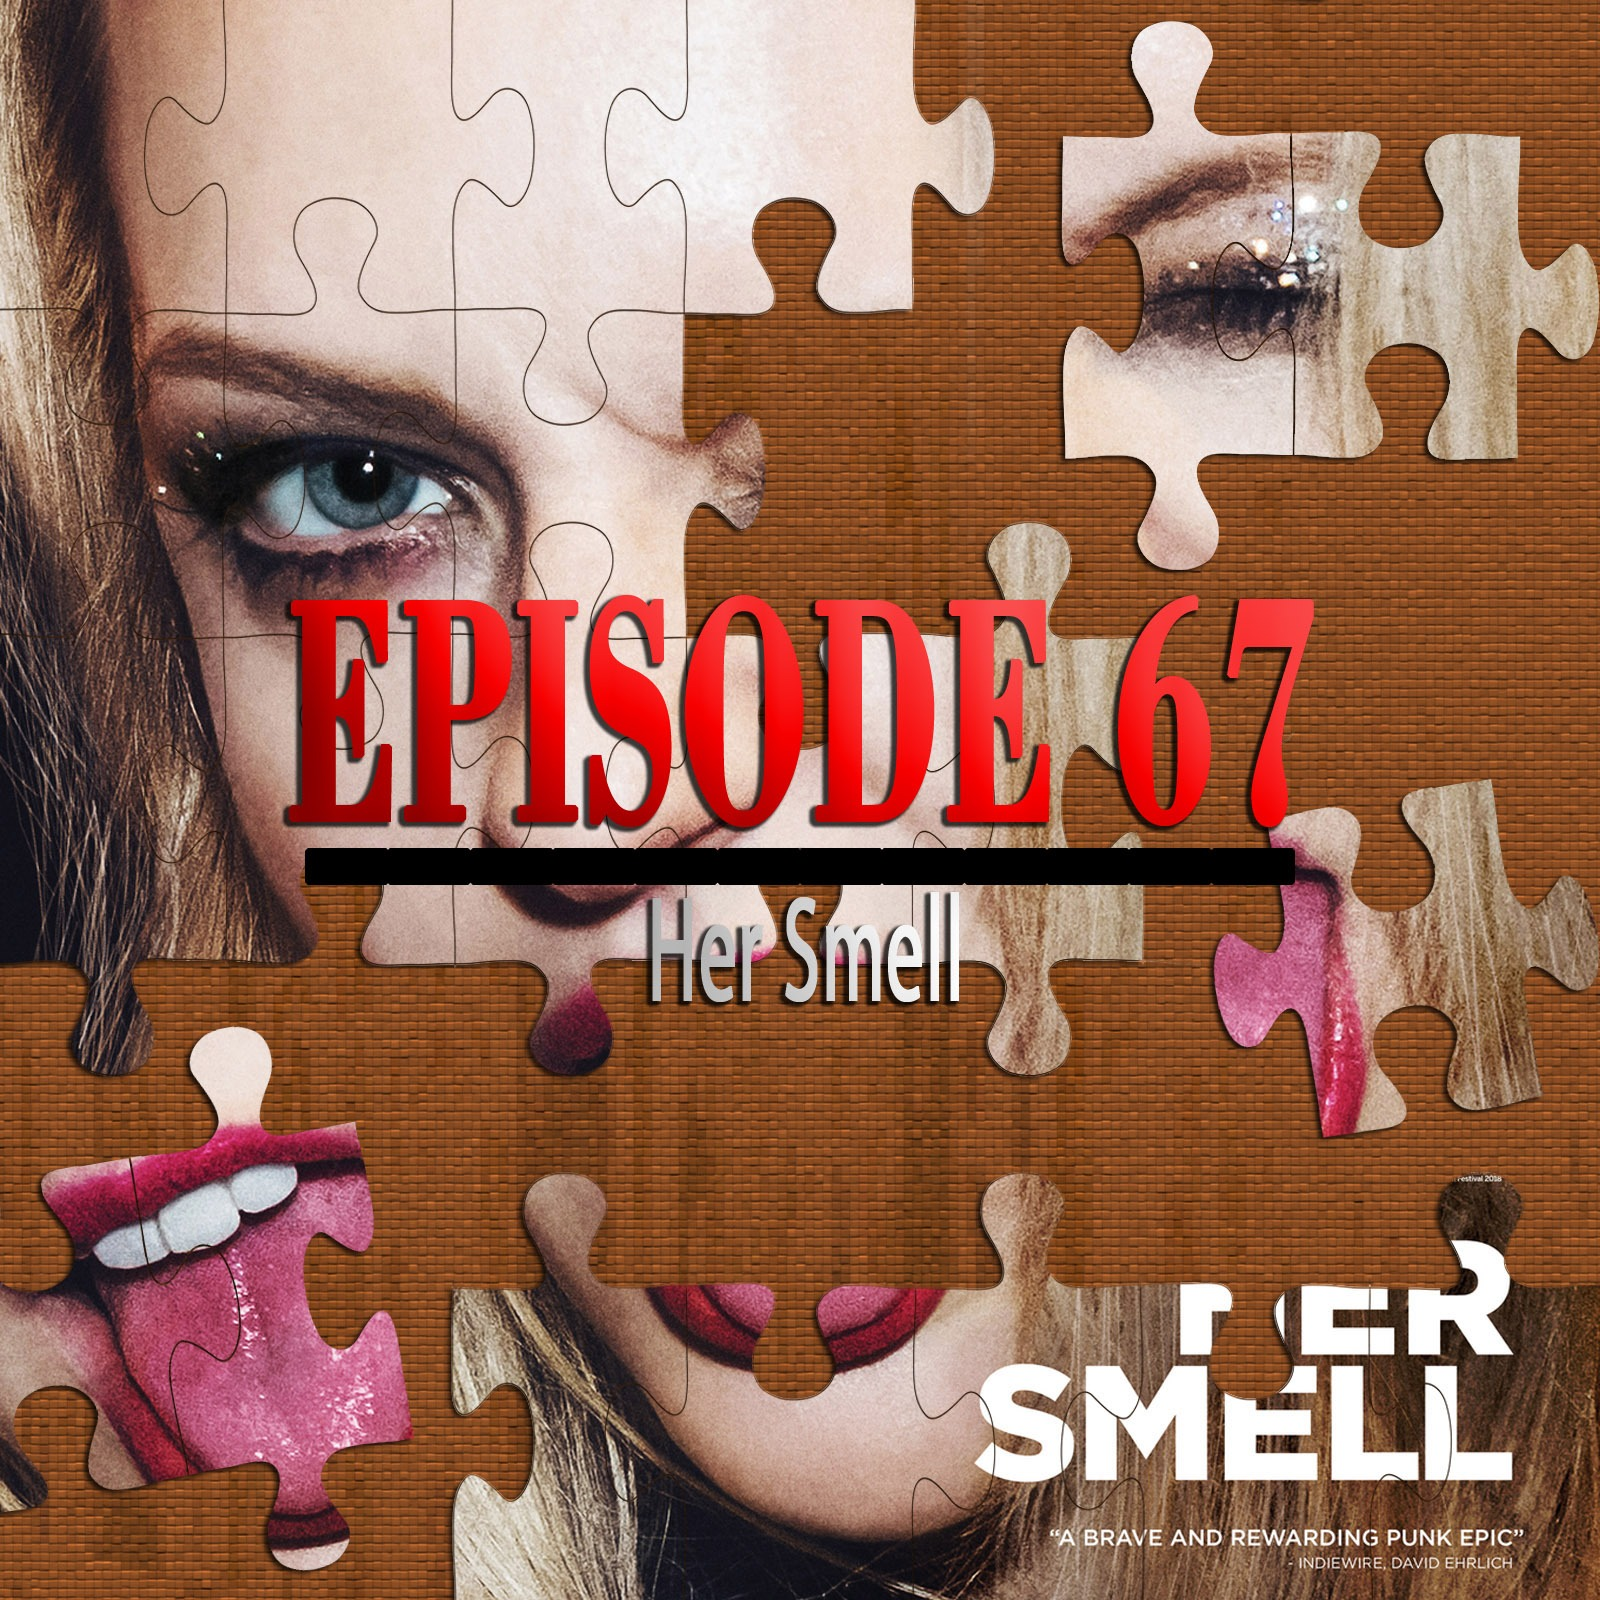 Her Smell (Featuring Josh Bell)